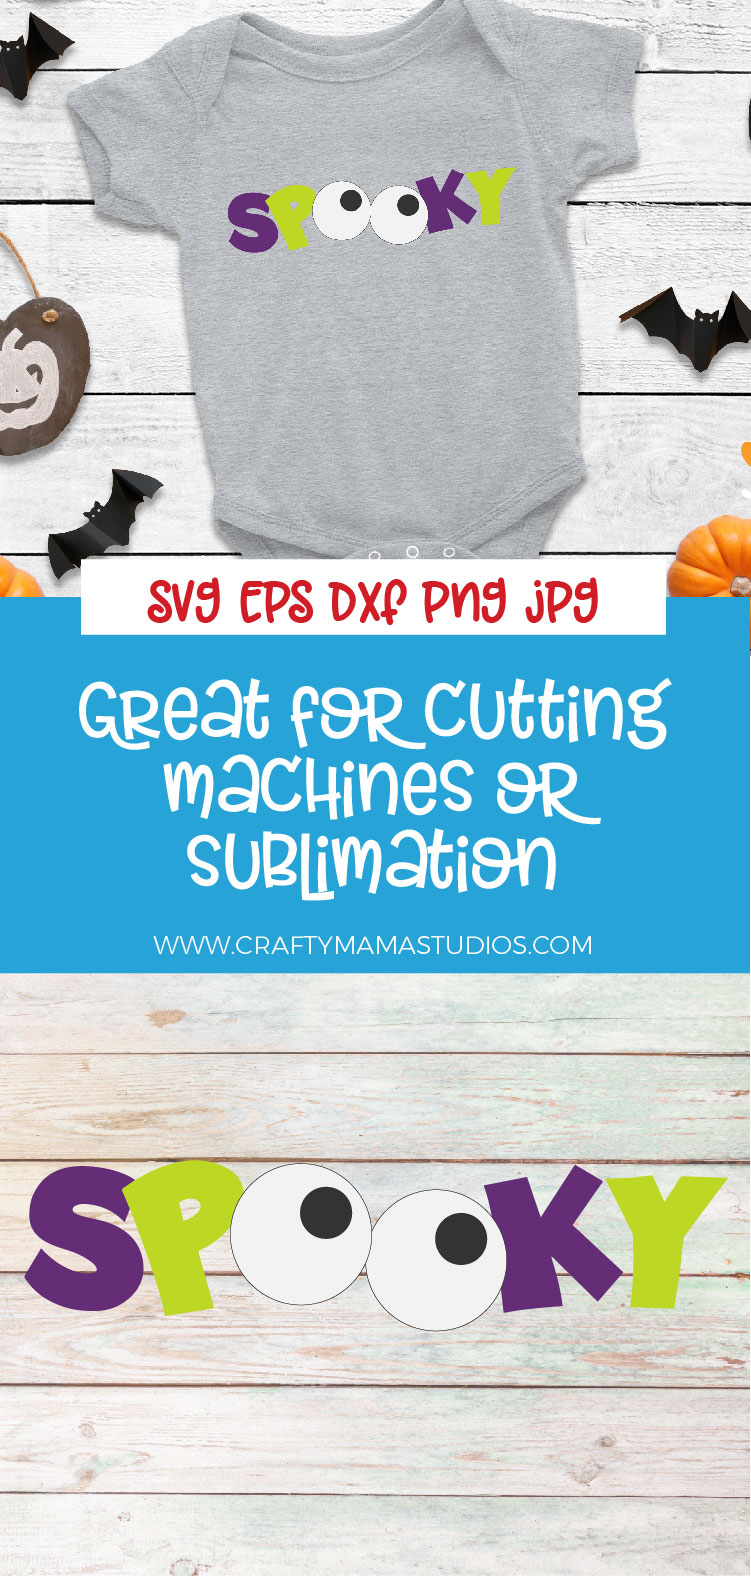 Spooky Halloween SVG Sublimation, Halloween Eyes SVG example image 3